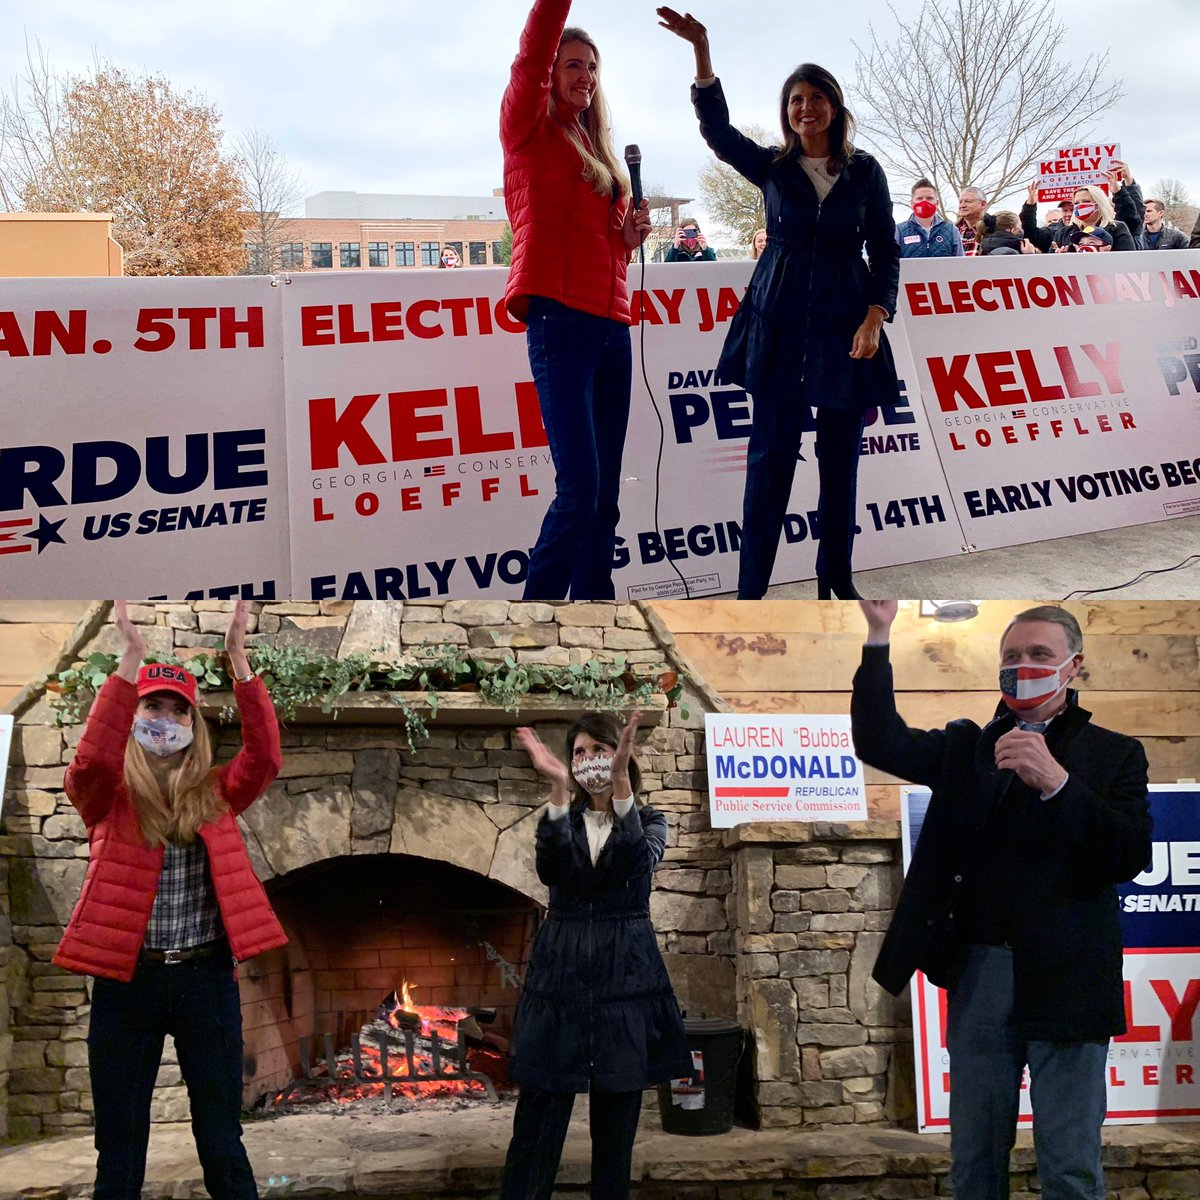 Georgia, please use the power of your voice and vote today! The country is counting on you. Vote Loeffler/Perdue ❤️🇺🇸 @KLoeffler @Perduesenate https://t.co/tEWK7ZrVR9